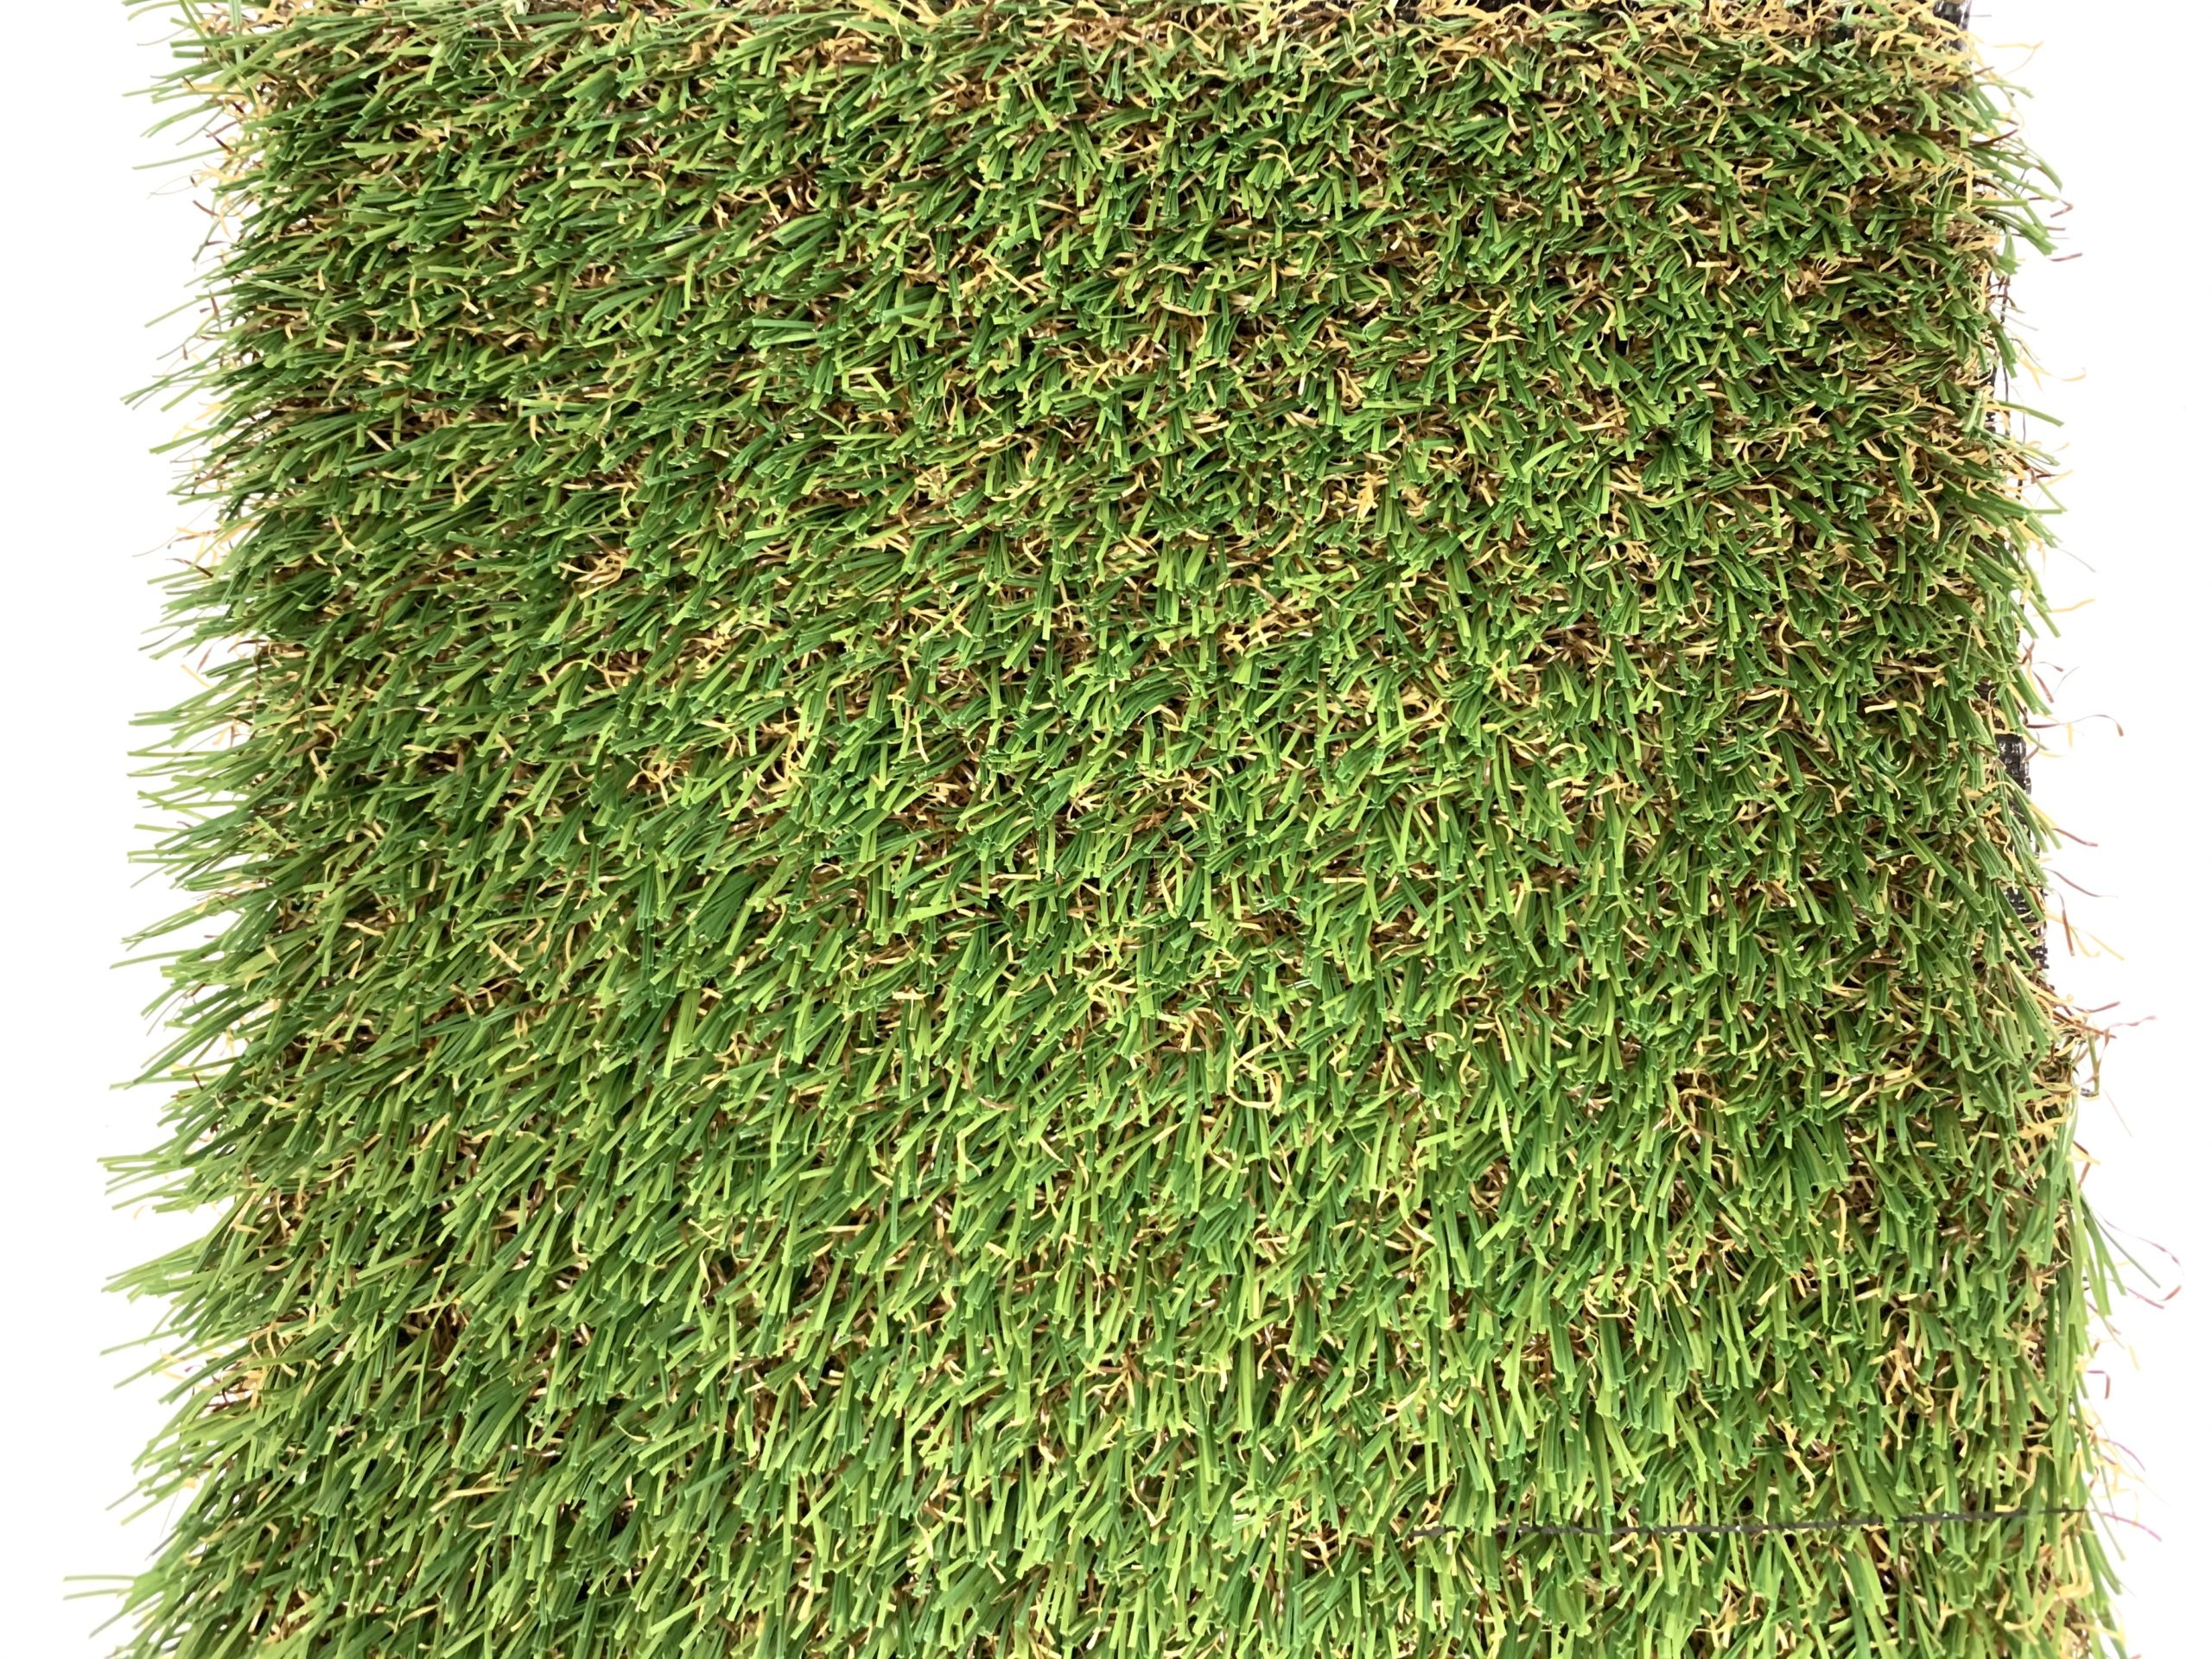 Top view of PG Natural Prime Landscaping Turf